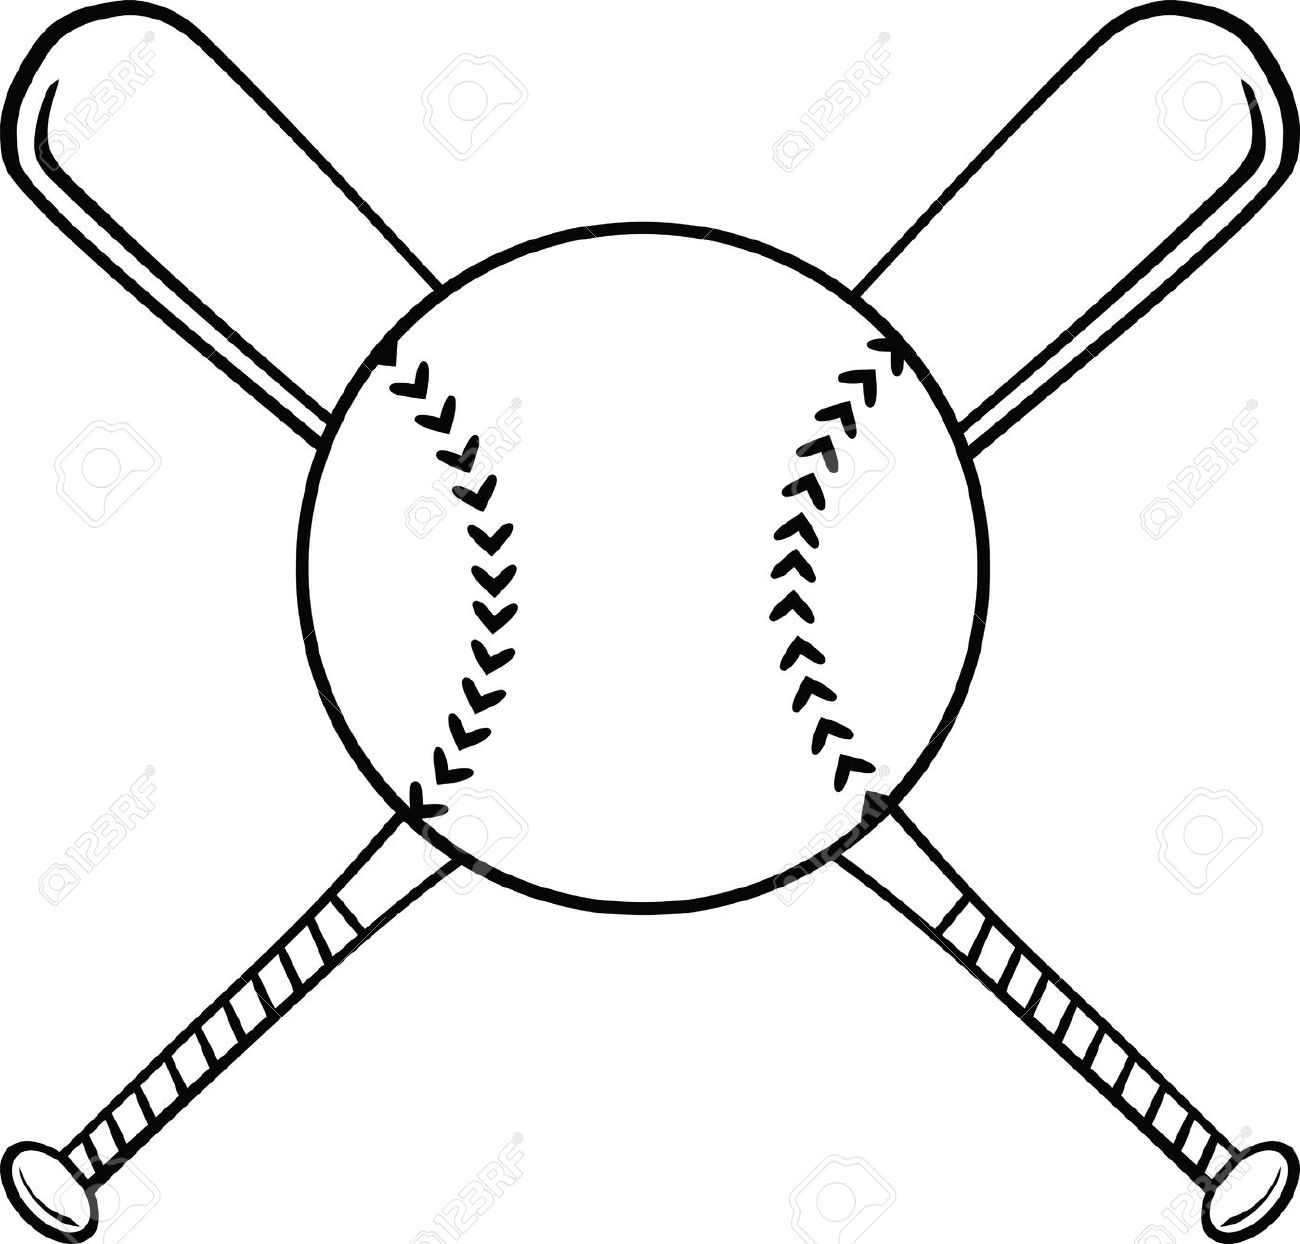 Crossed baseball black and. Bats clipart line art